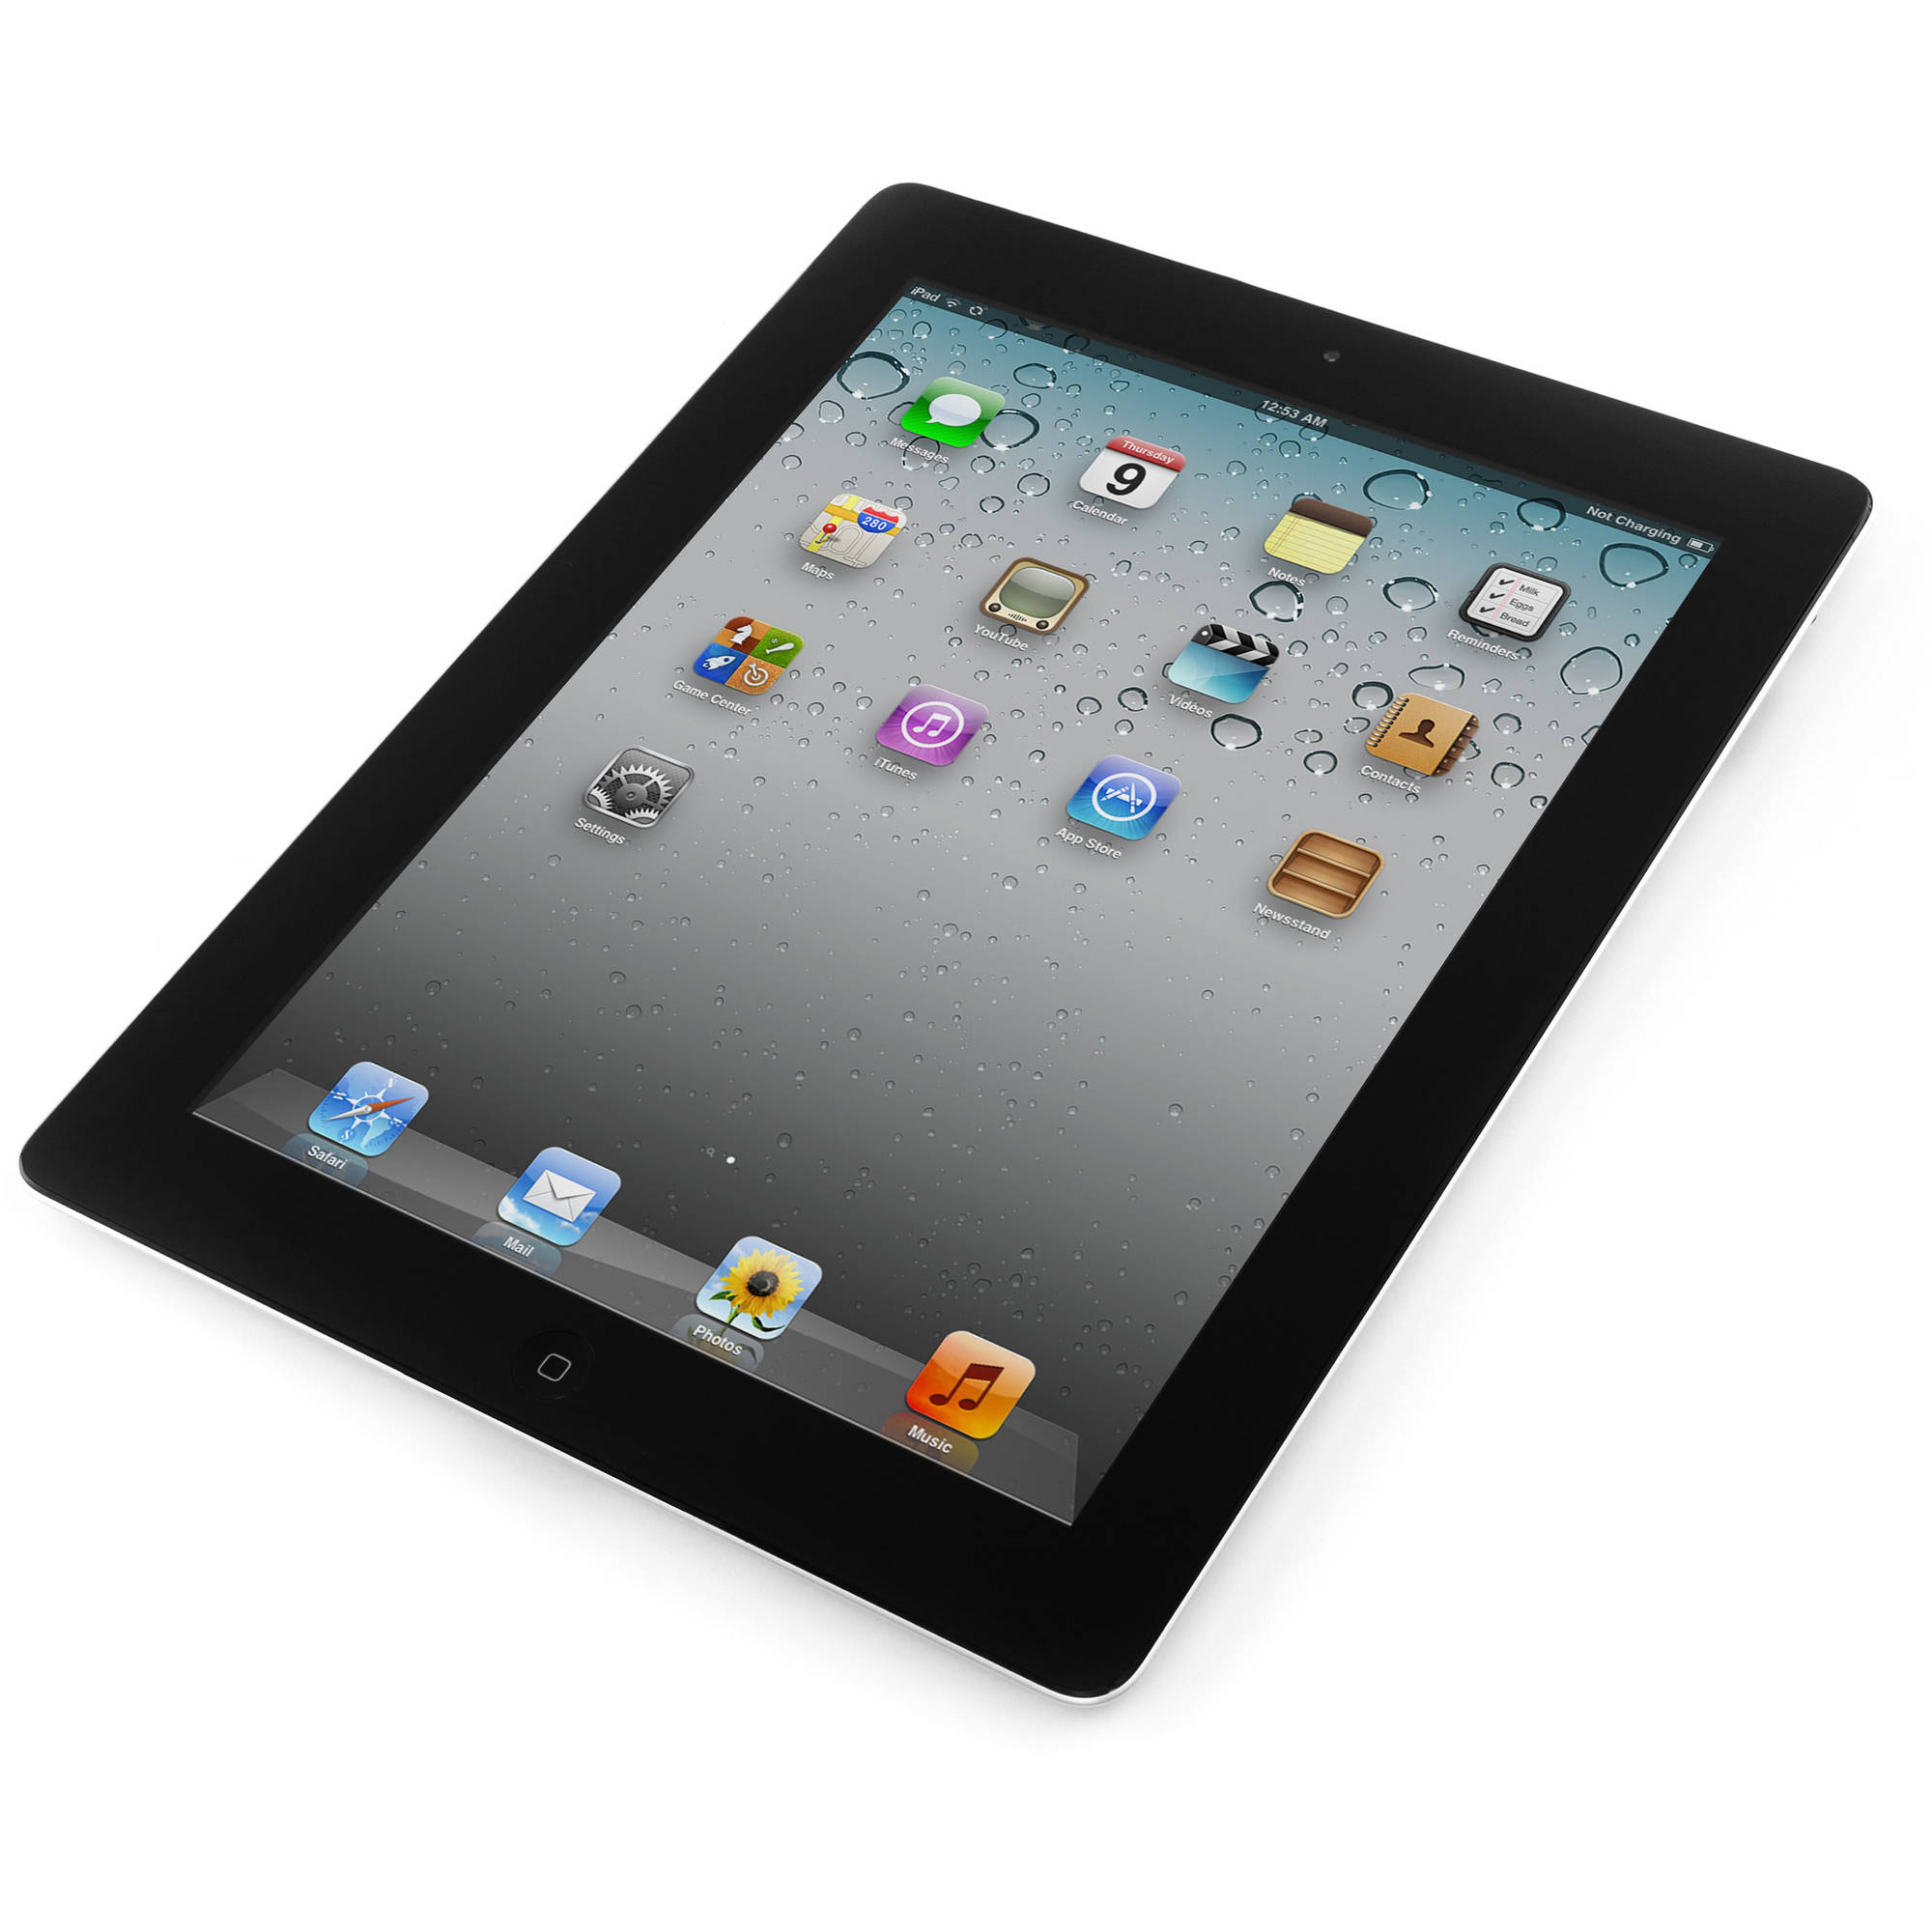 Apple iPad 4 16GB Wi-Fi Refurbished